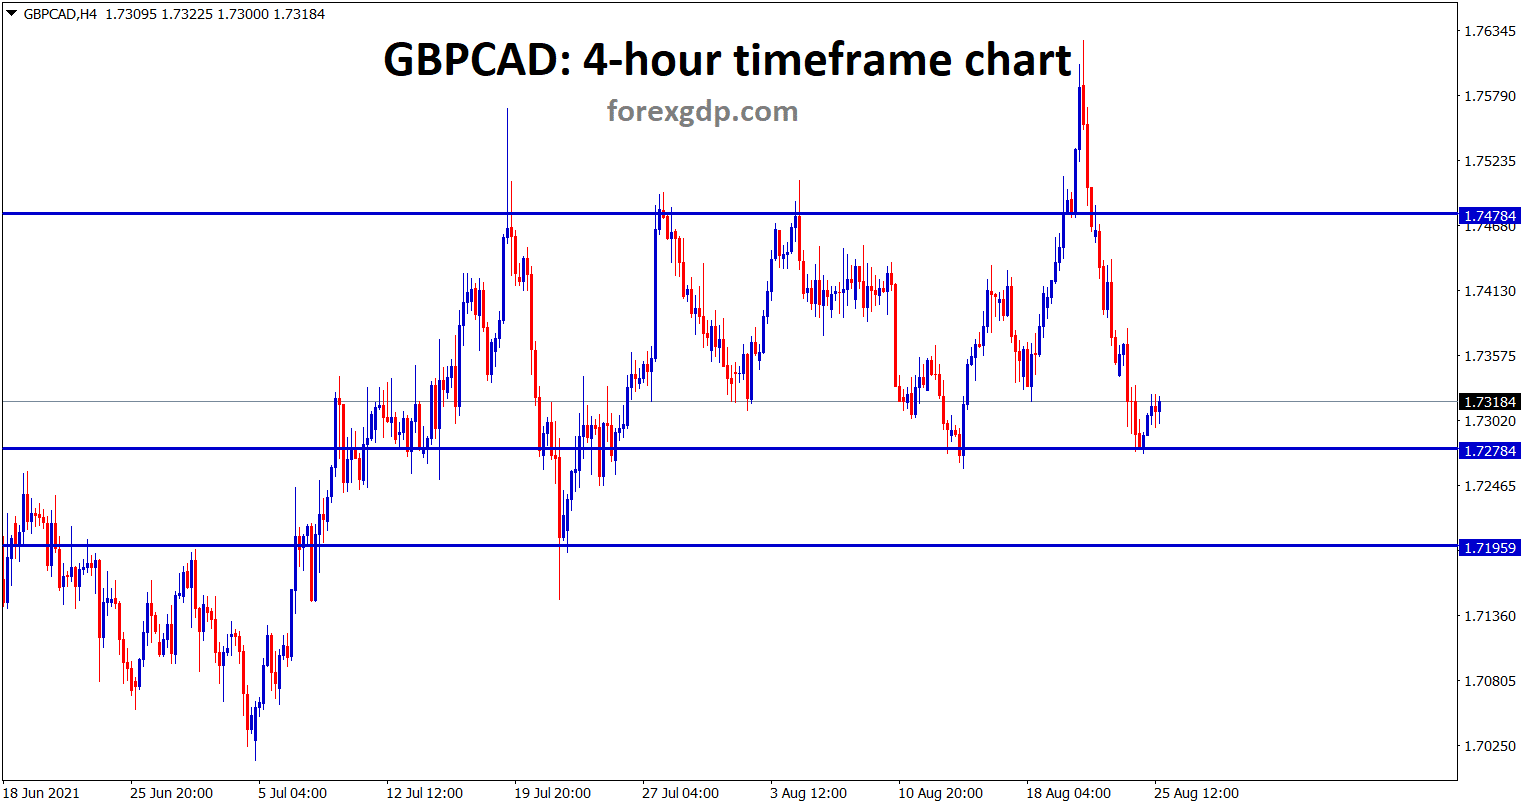 GBPCAD bounces back from the minor support area currently market is ranging